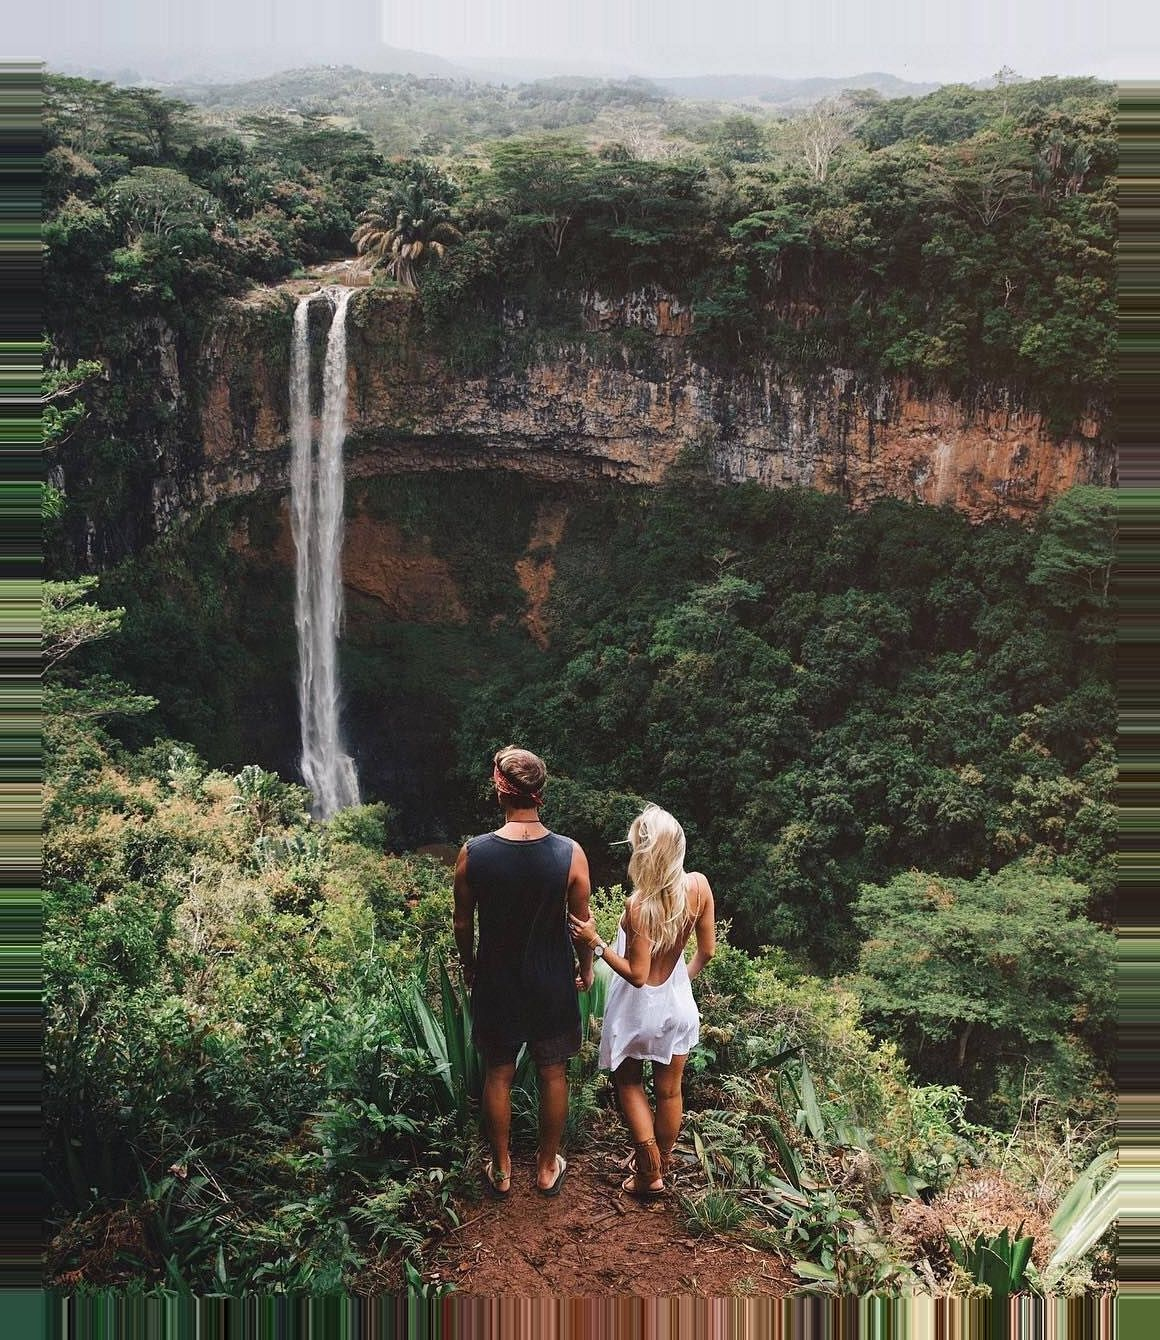 , #Reisepaar Instagram #tentree tentree Never ending adventures with you. PC: Supreme Clientele Travel in Mauritius ten trees are planted for every item…, Travel Couple, Travel Couple